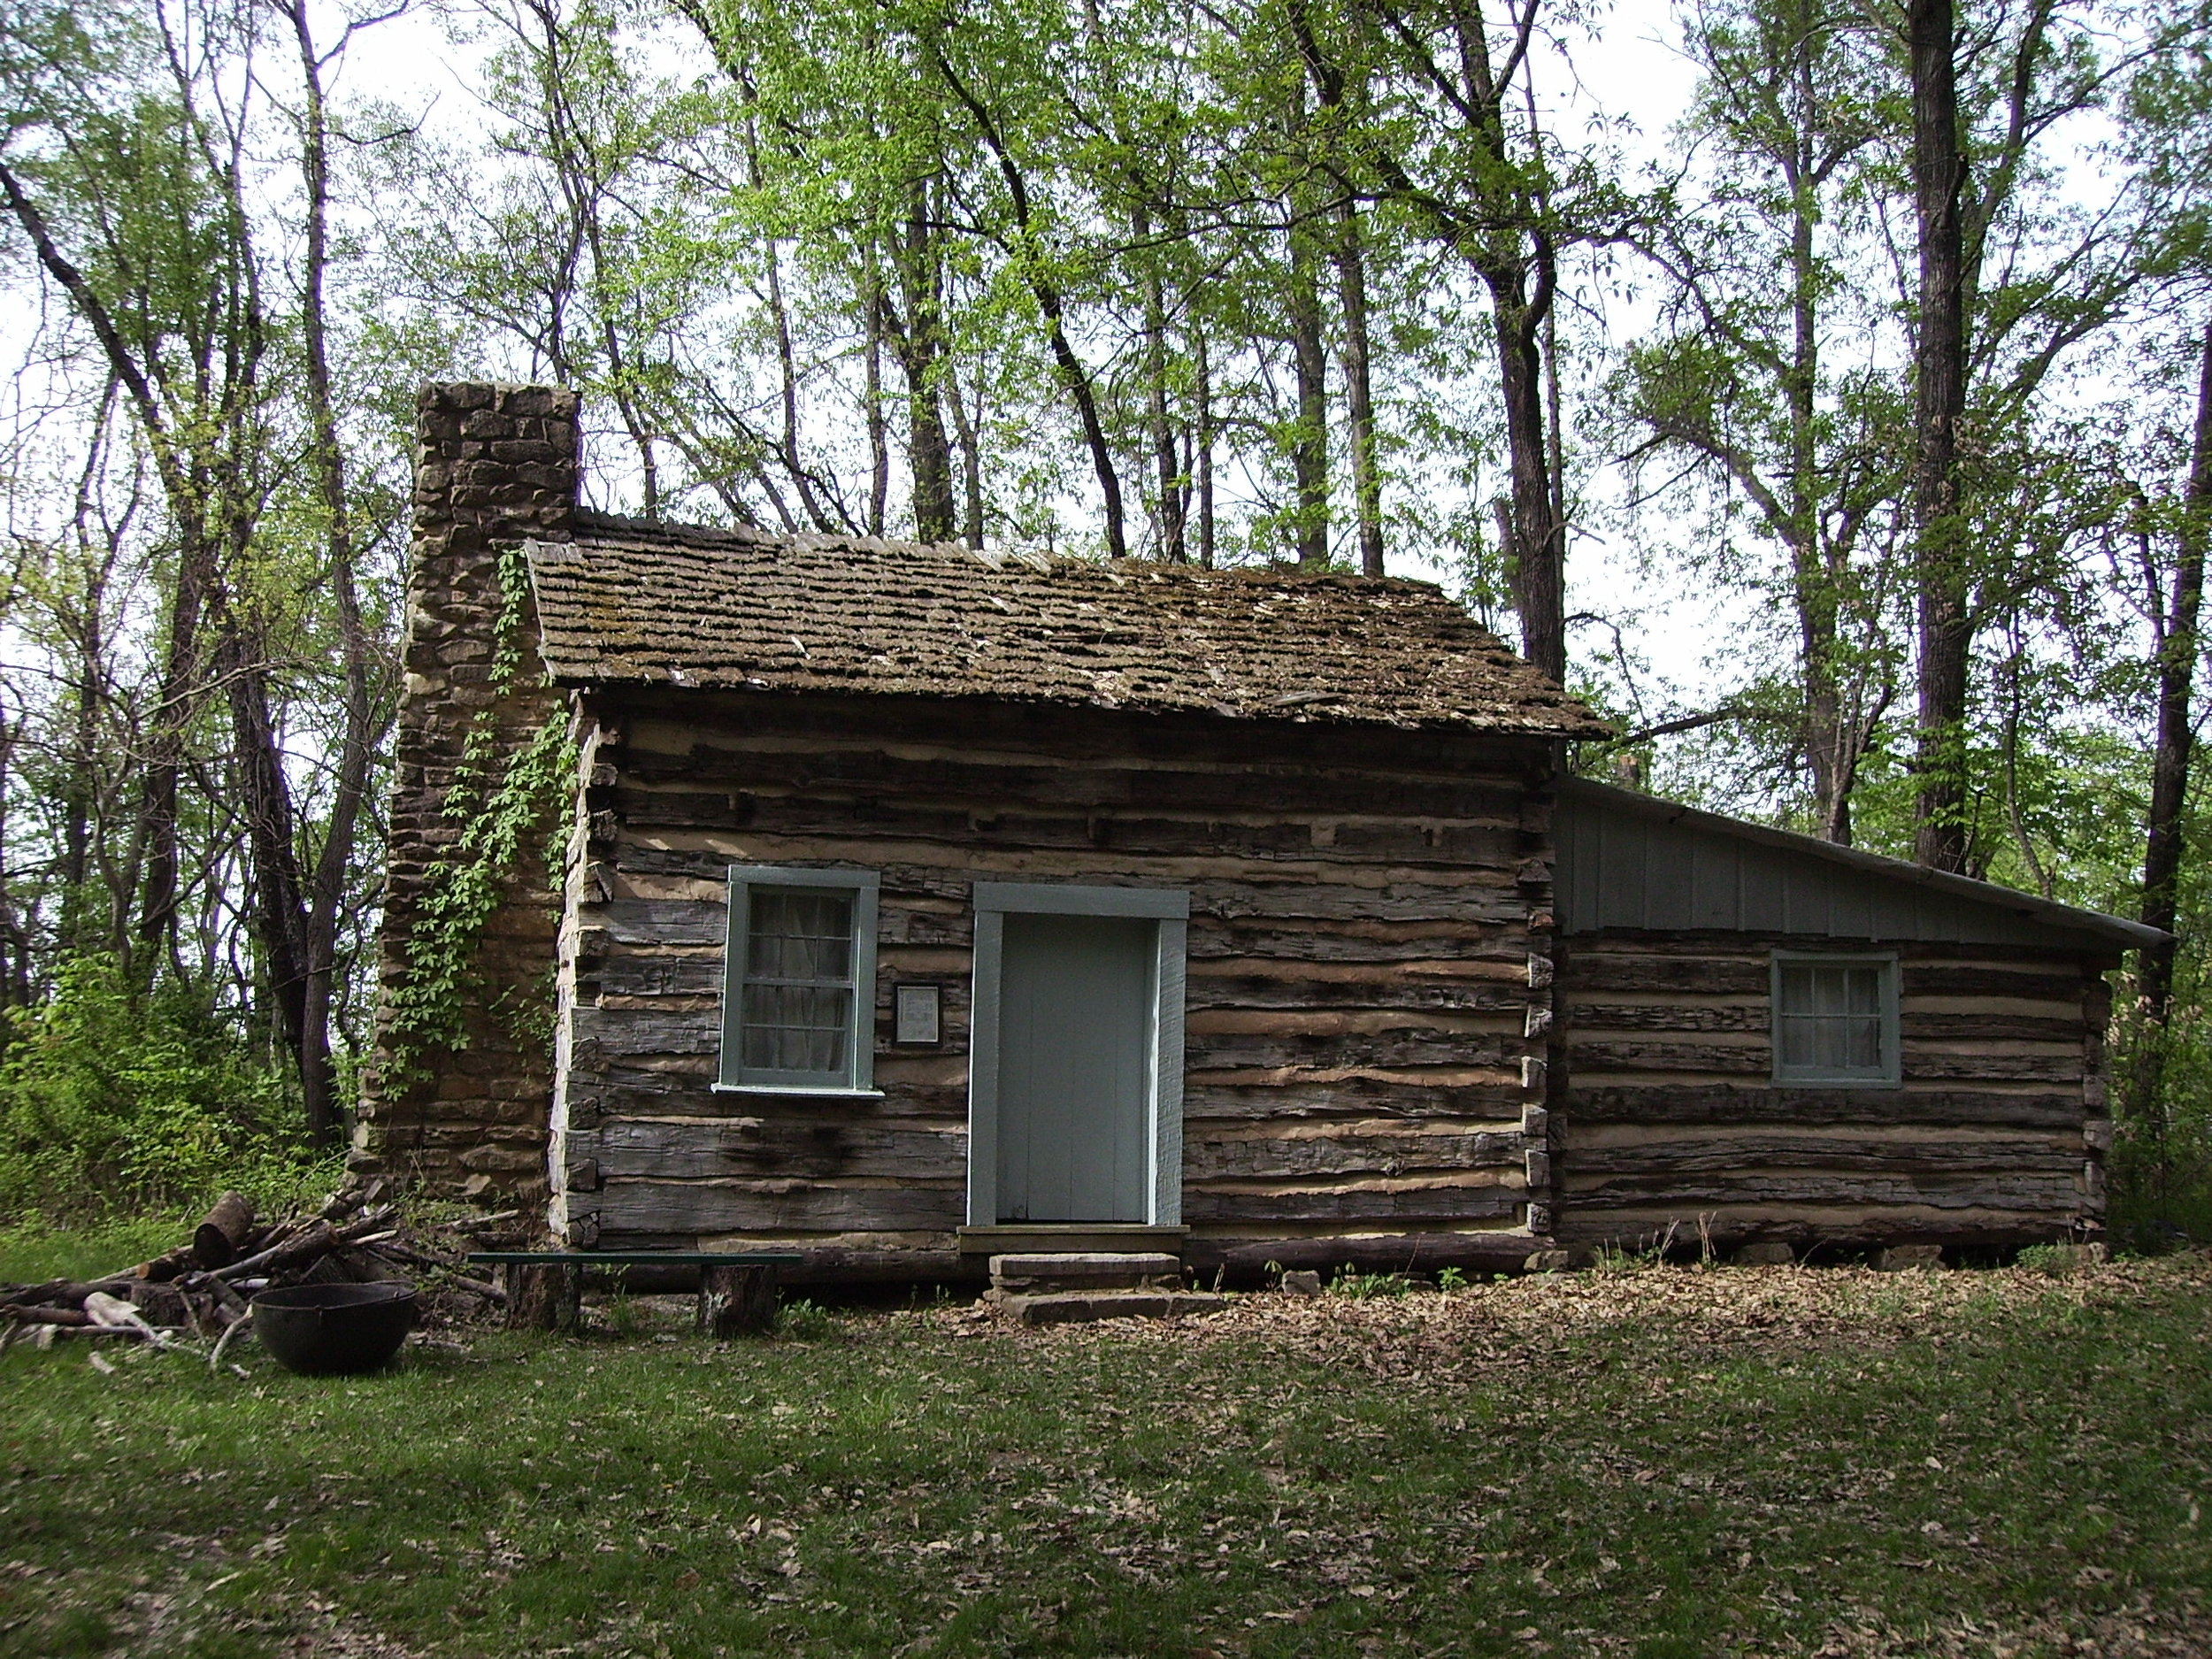 "Doolen Cabin - The Doolen cabin was built about 1860. Benjamin Doolen was born in Foster Township on February 23, 1843 and died March 1, 1926. He married Laura Ann Jones born January 16, 1843 on September 30, 1860. Both Benjamin and Laura were 17 years old. At age eighteen their first child was born, Harriett Llewellyn.At age nineteen Ben enlisted in the Union Army serving in Company D 111th Illinois Infantry from 1862 -1865. His Company was with General Sherman on the famed ""march to the sea"".Benjamin and Laura had three more children: Sherman, born April 1866 died thirteen days old; Icy Dora, born March 1867; and Charles Isham, born August 1869.After the death of Laura, Ben married Mrs. Inis Tate on September 26, 1896.Benjamin is buried in Doolen Cemetery with his two wives."